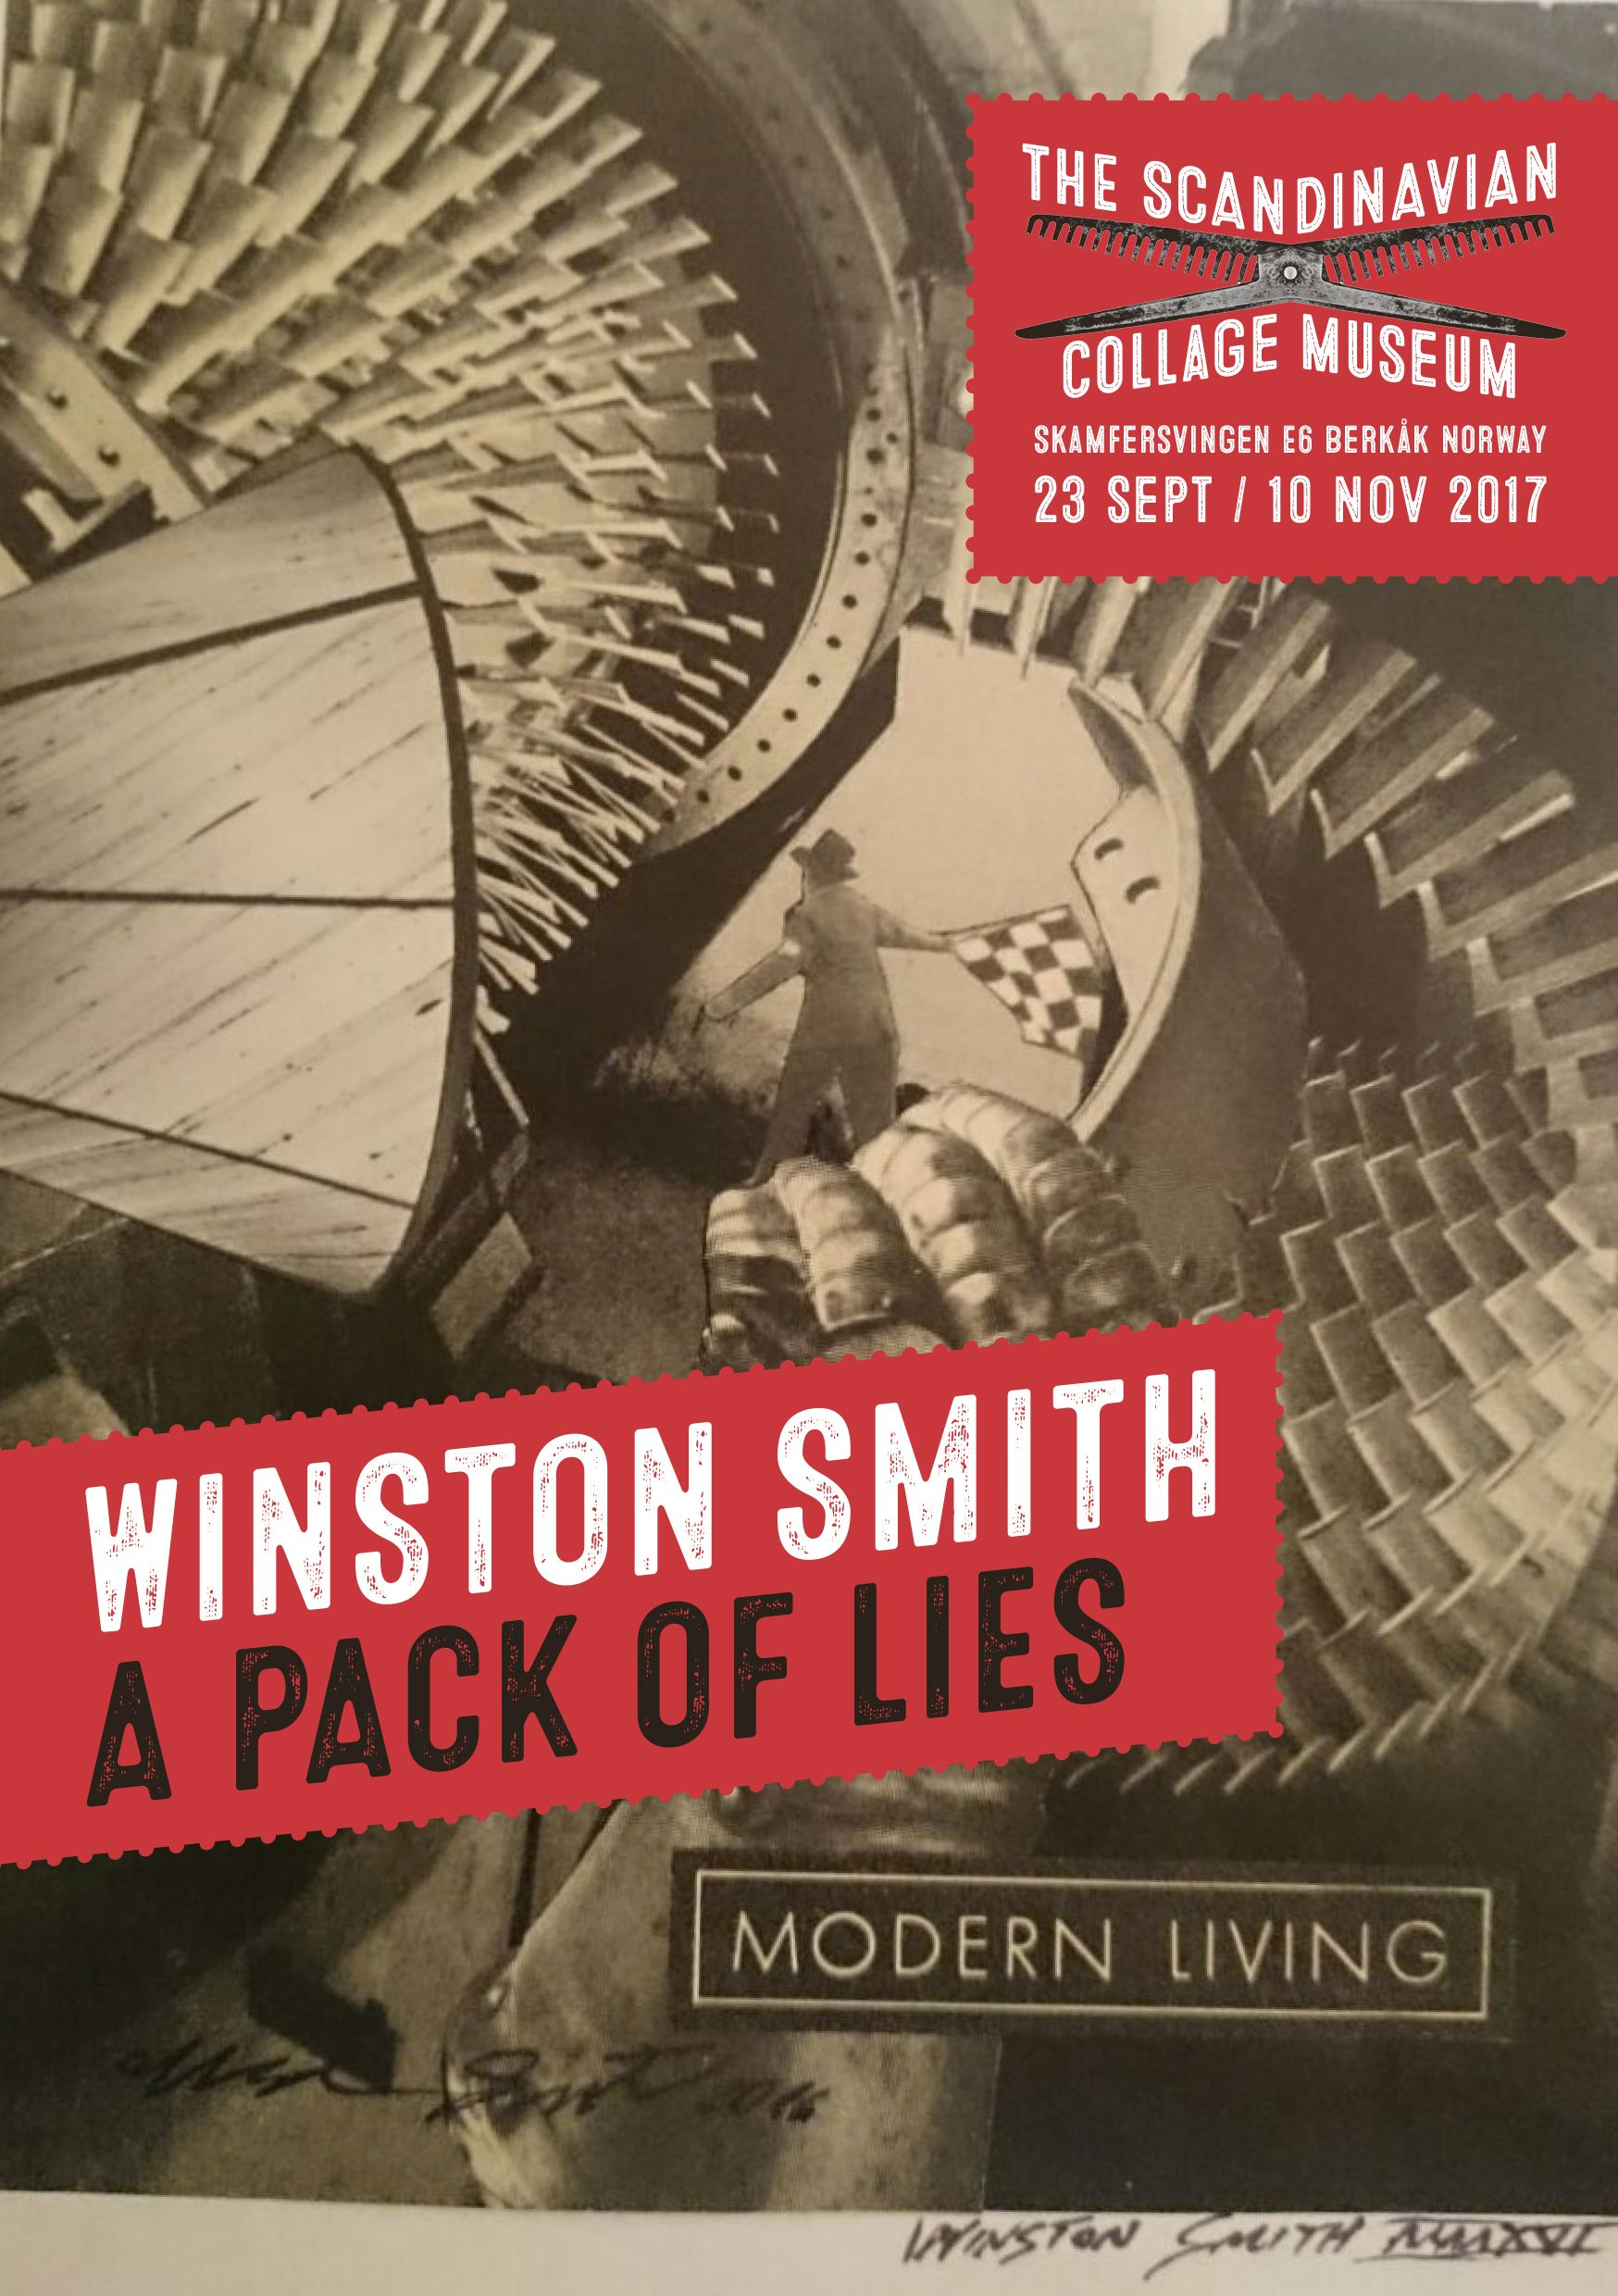 Scandinavian Collage Museum Winston Smith A Pack of Lies